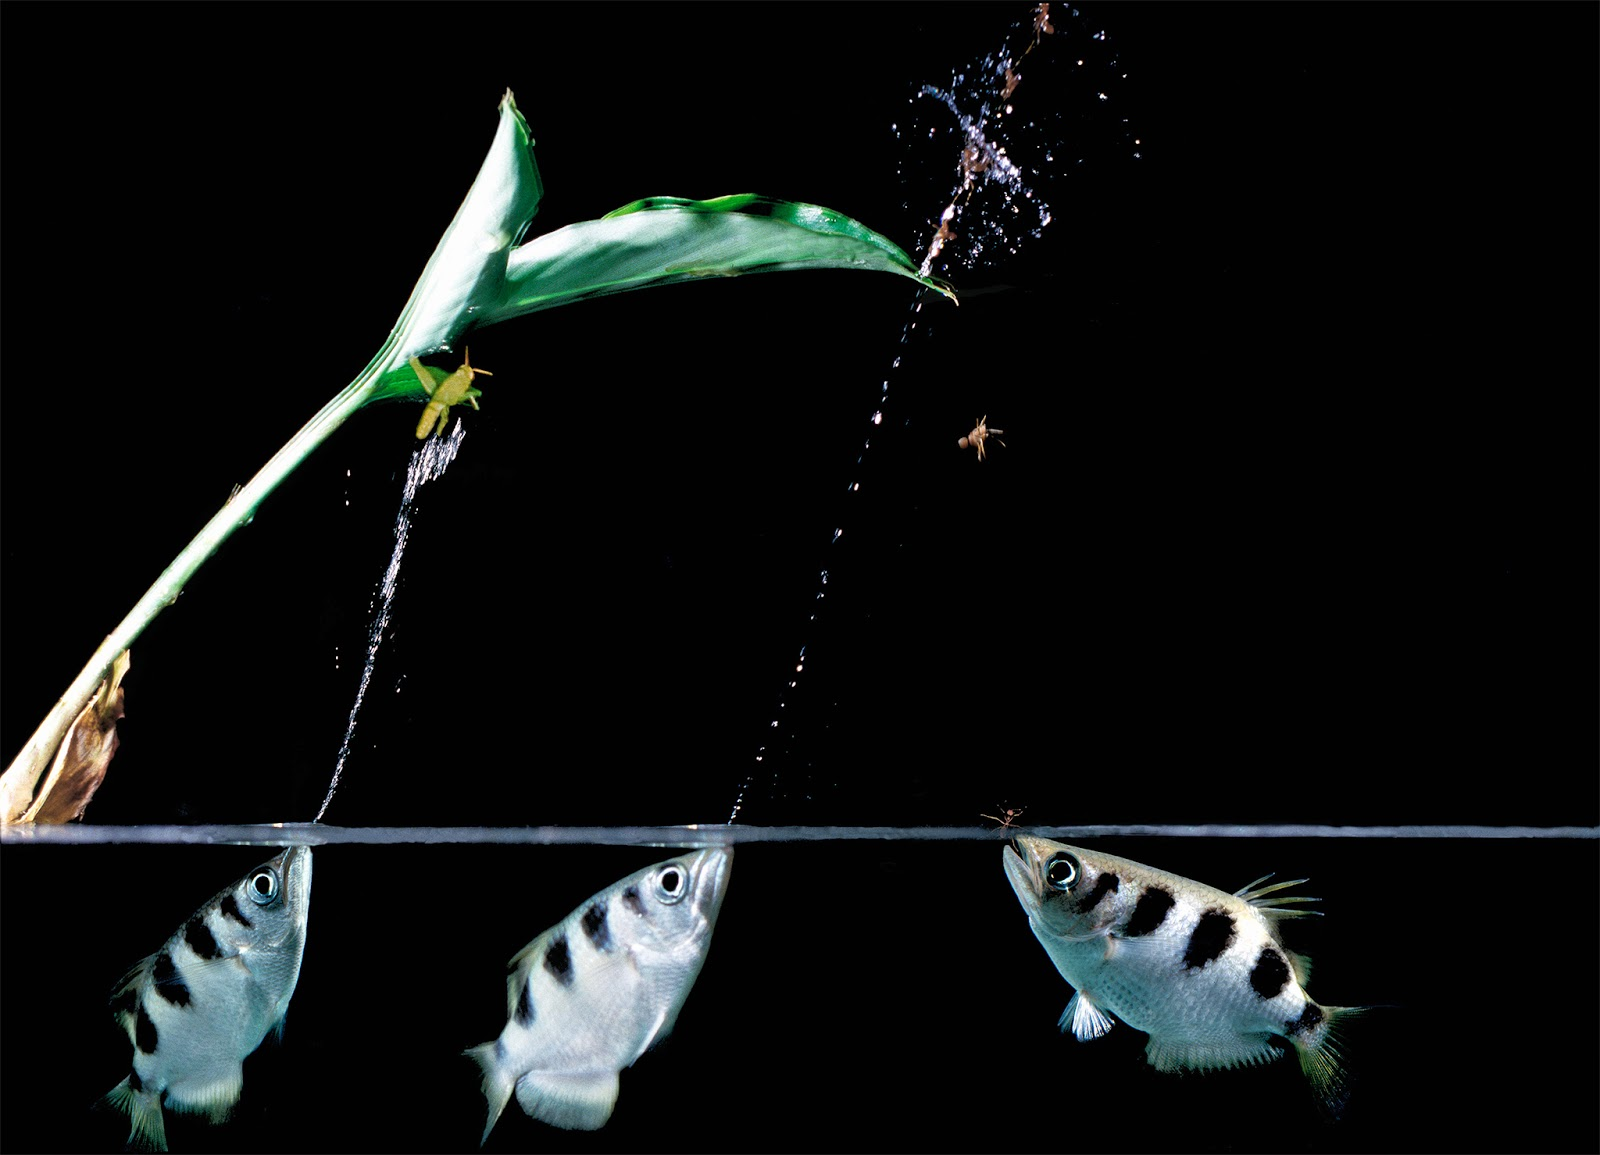 archerfish in group